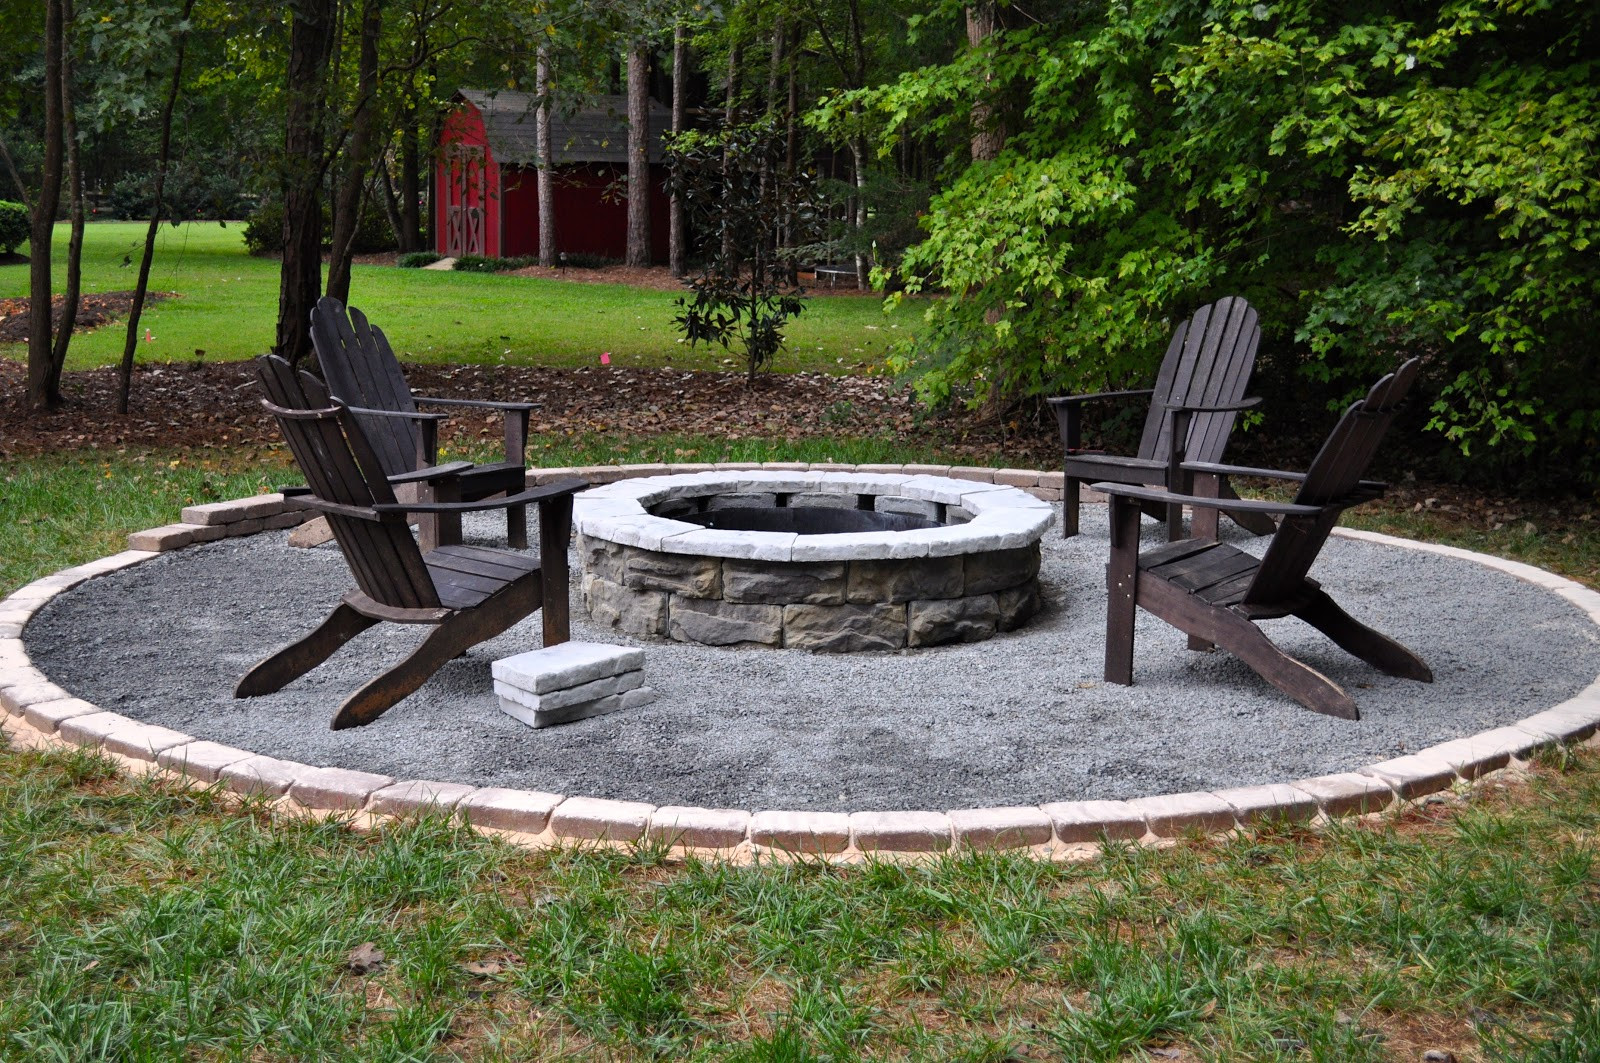 Best ideas about DIY Fire Pit Kit . Save or Pin The Collected Interior Our Diy Fire Pit Now.